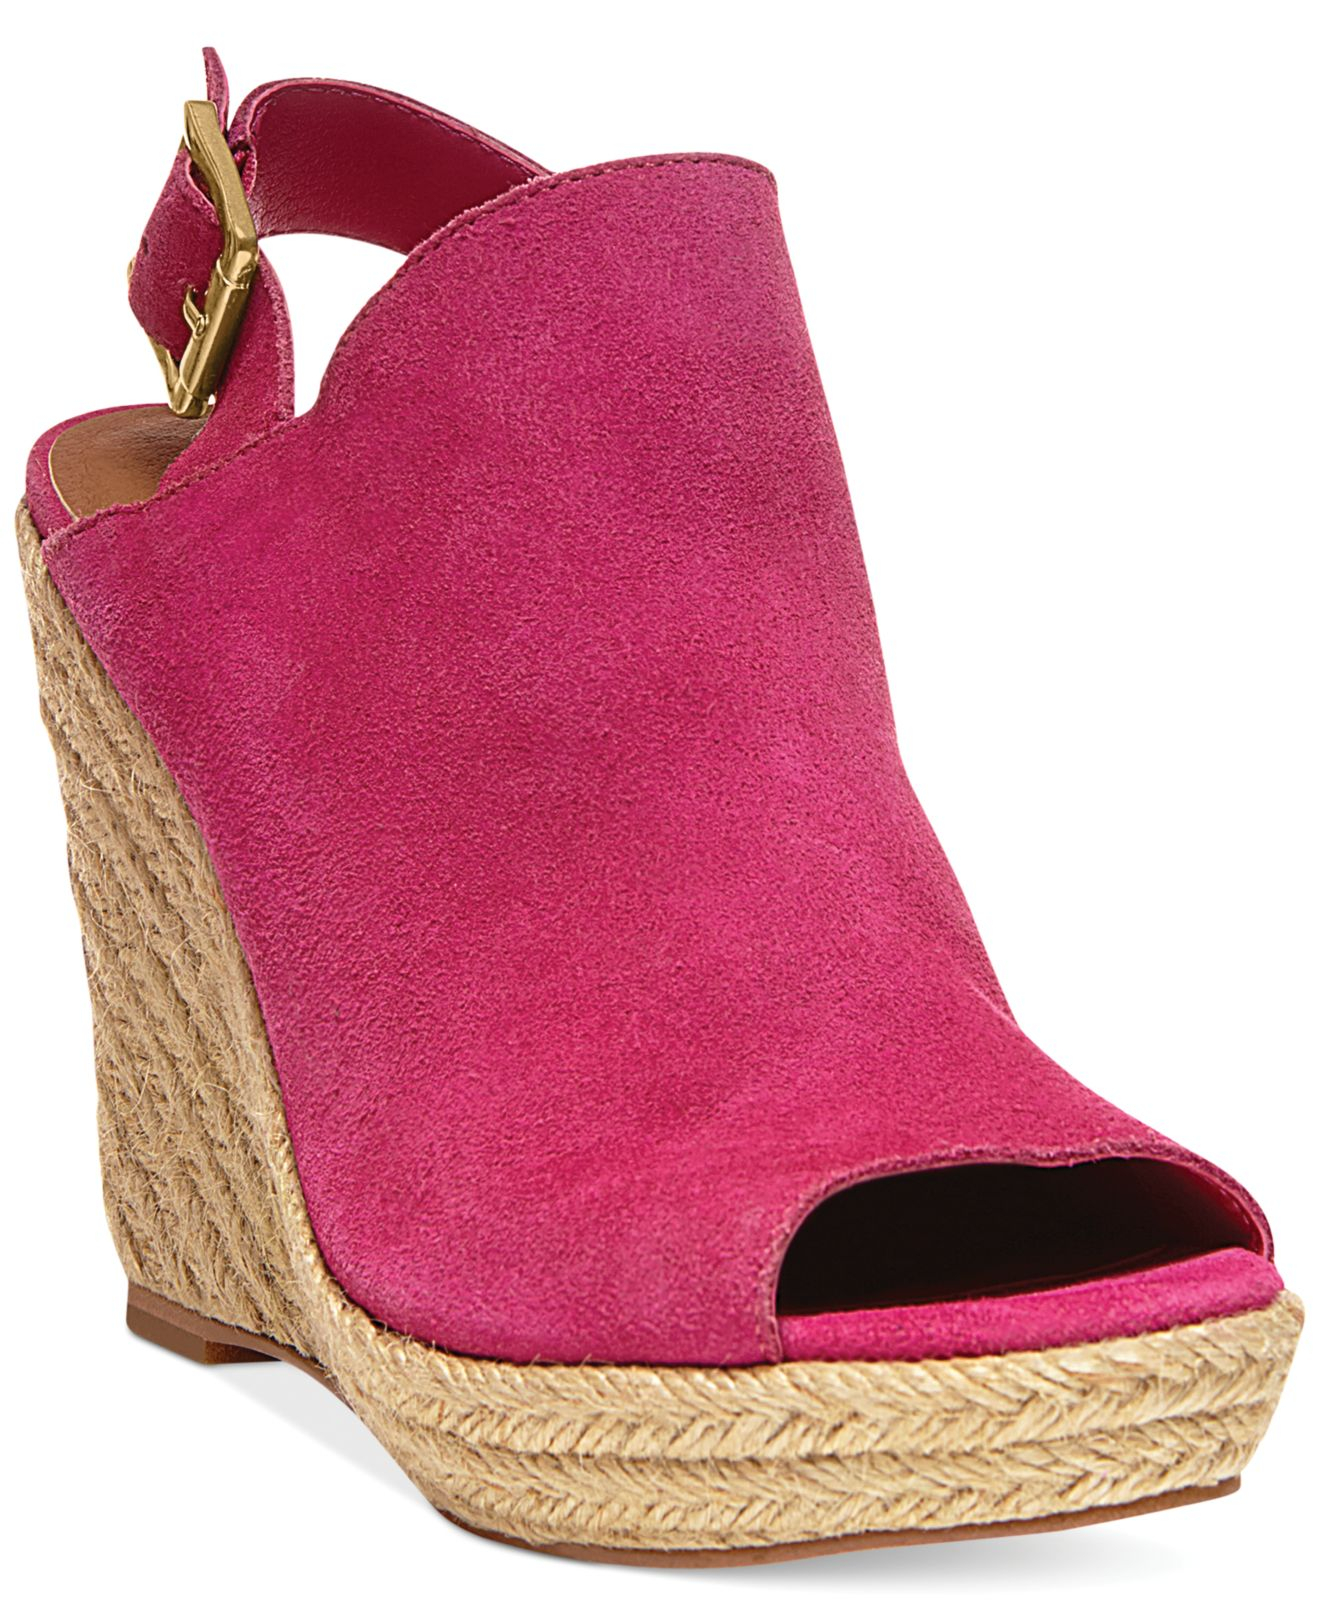 322f24983eac Lyst - Steve Madden Women S Corizon Platform Wedge Sandals in Pink